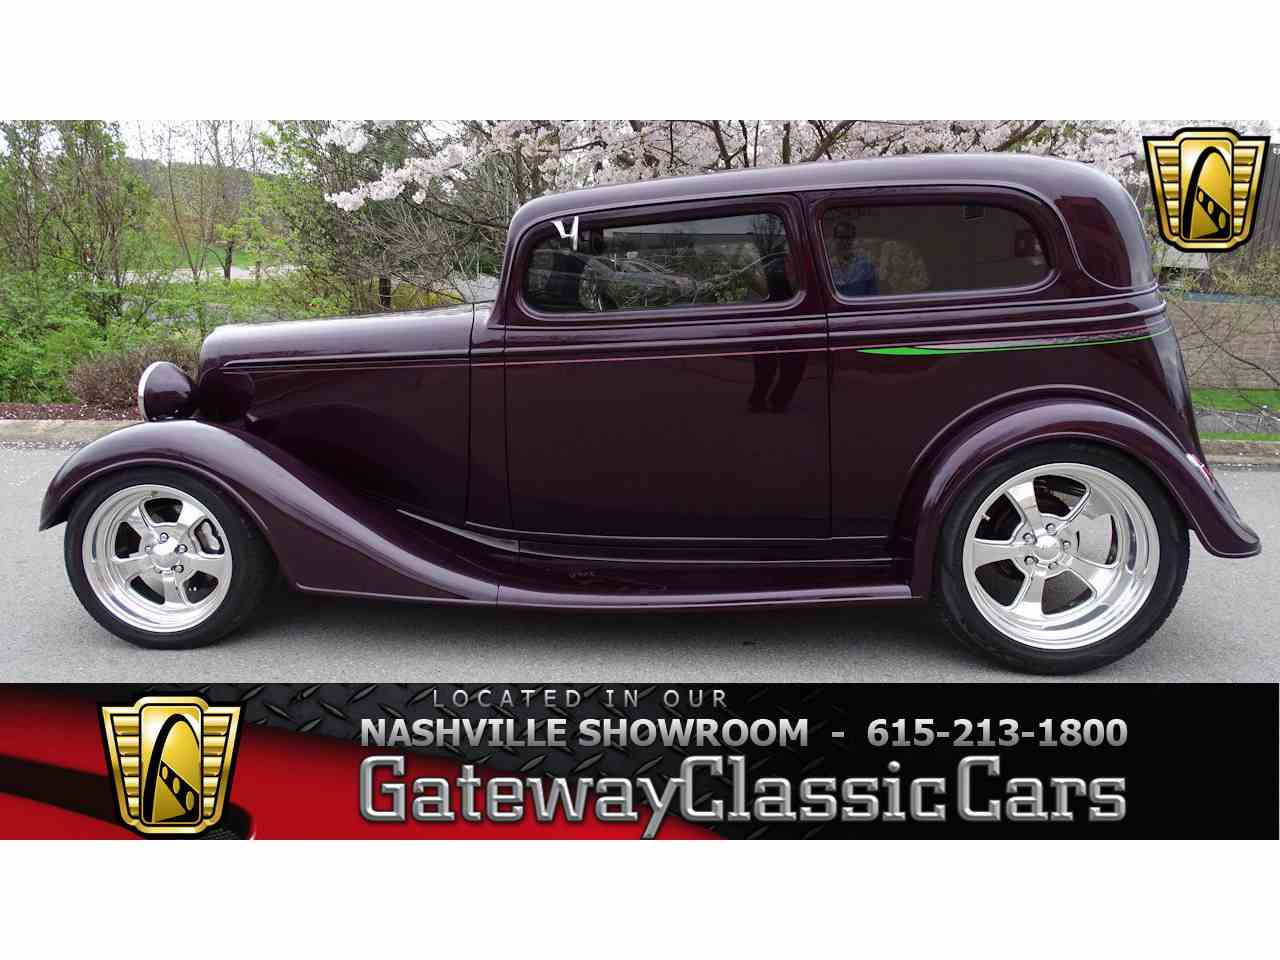 Old Fashioned Street Rod For Sale Images - Classic Cars Ideas - boiq ...